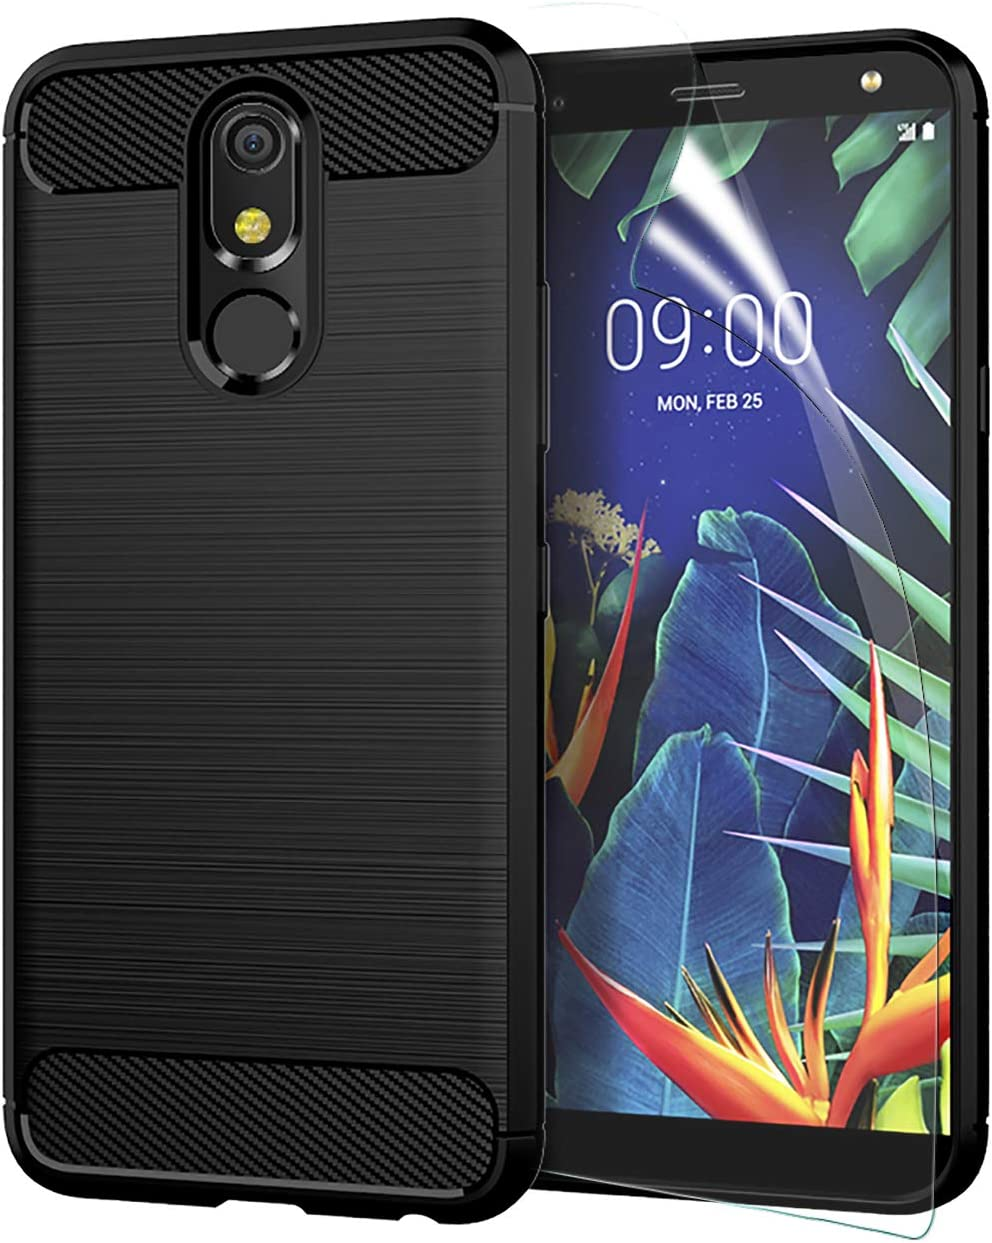 CaseRoo LG K40 Case 2019,LG Xpression Plus 2 CasewScreen Protector,LG Solo LTE/LG Harmony 3/LG K12 Plus Phone Case,LG K40 Brushed Soft Slim Anti-Scratch Anti-Slip Rubber Bumper Protective Cover,Black